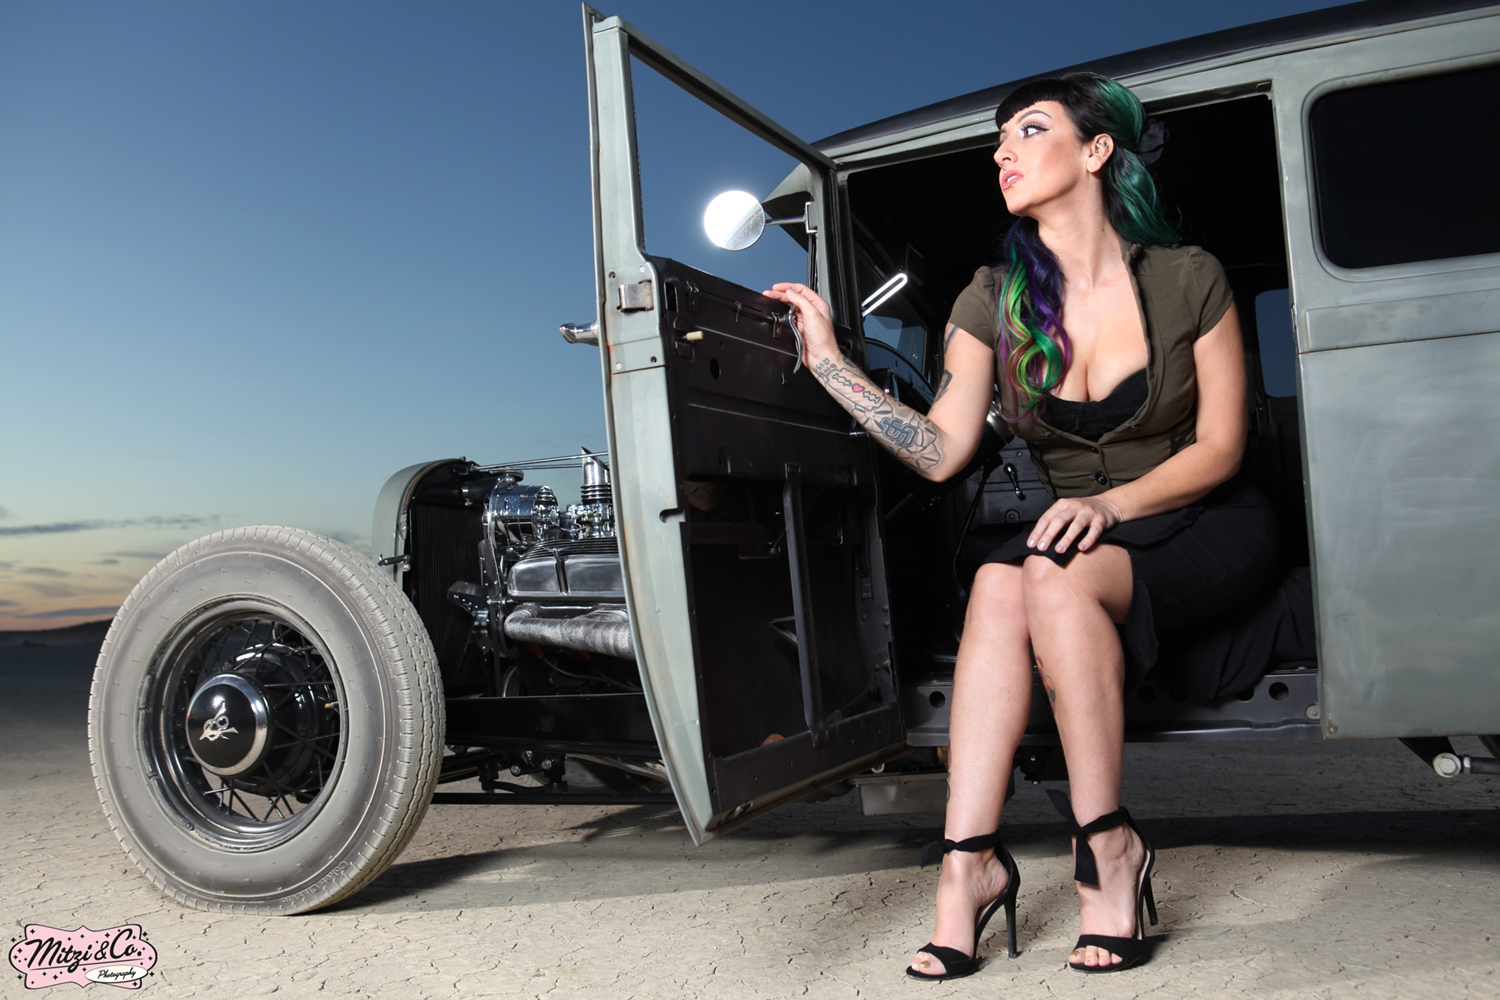 Pinup of the Week: Miss Jacquie